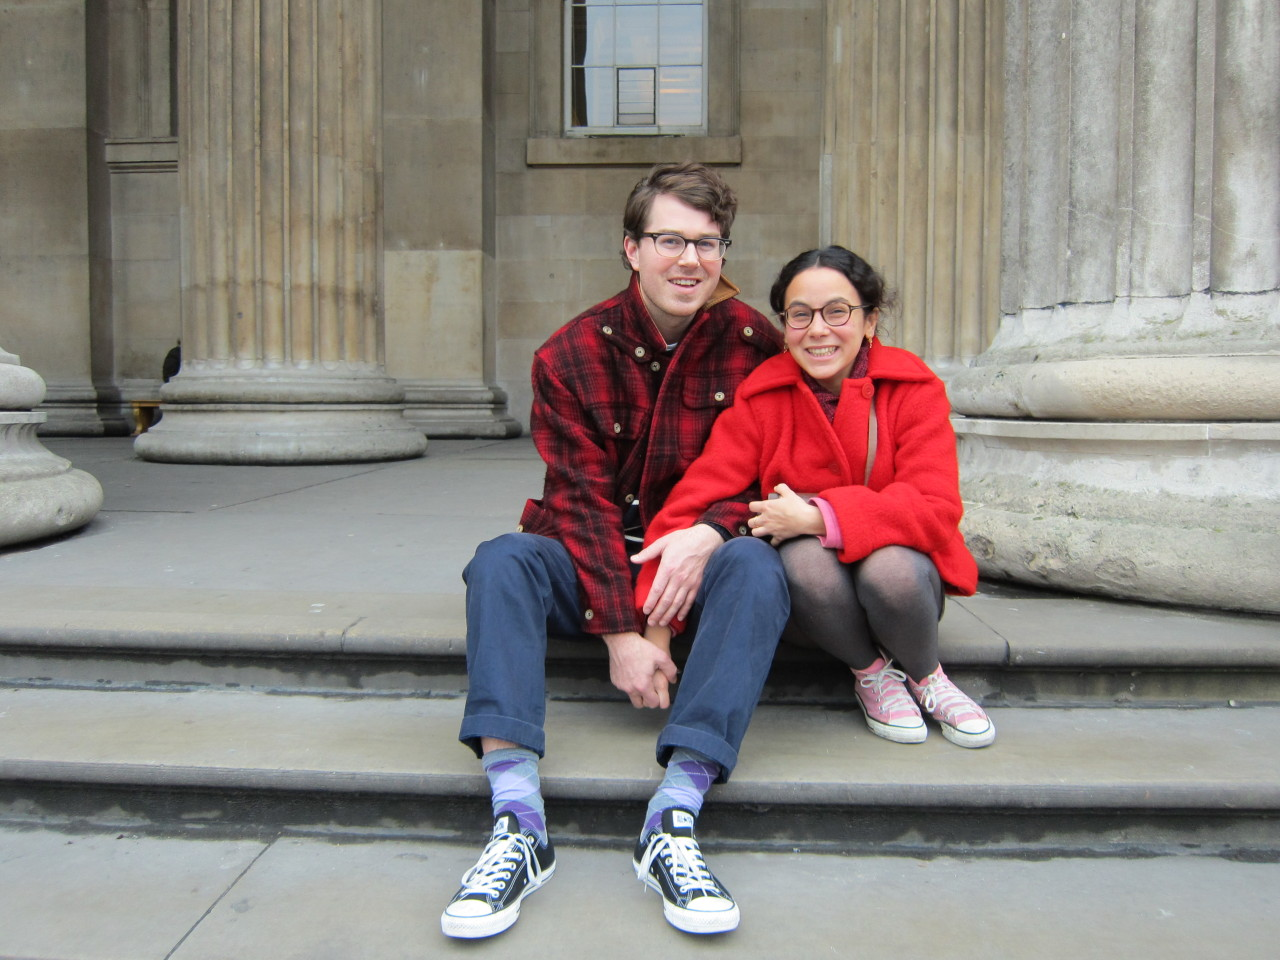 Alex Detrick and Cleo Le-Tan at the British Museum.